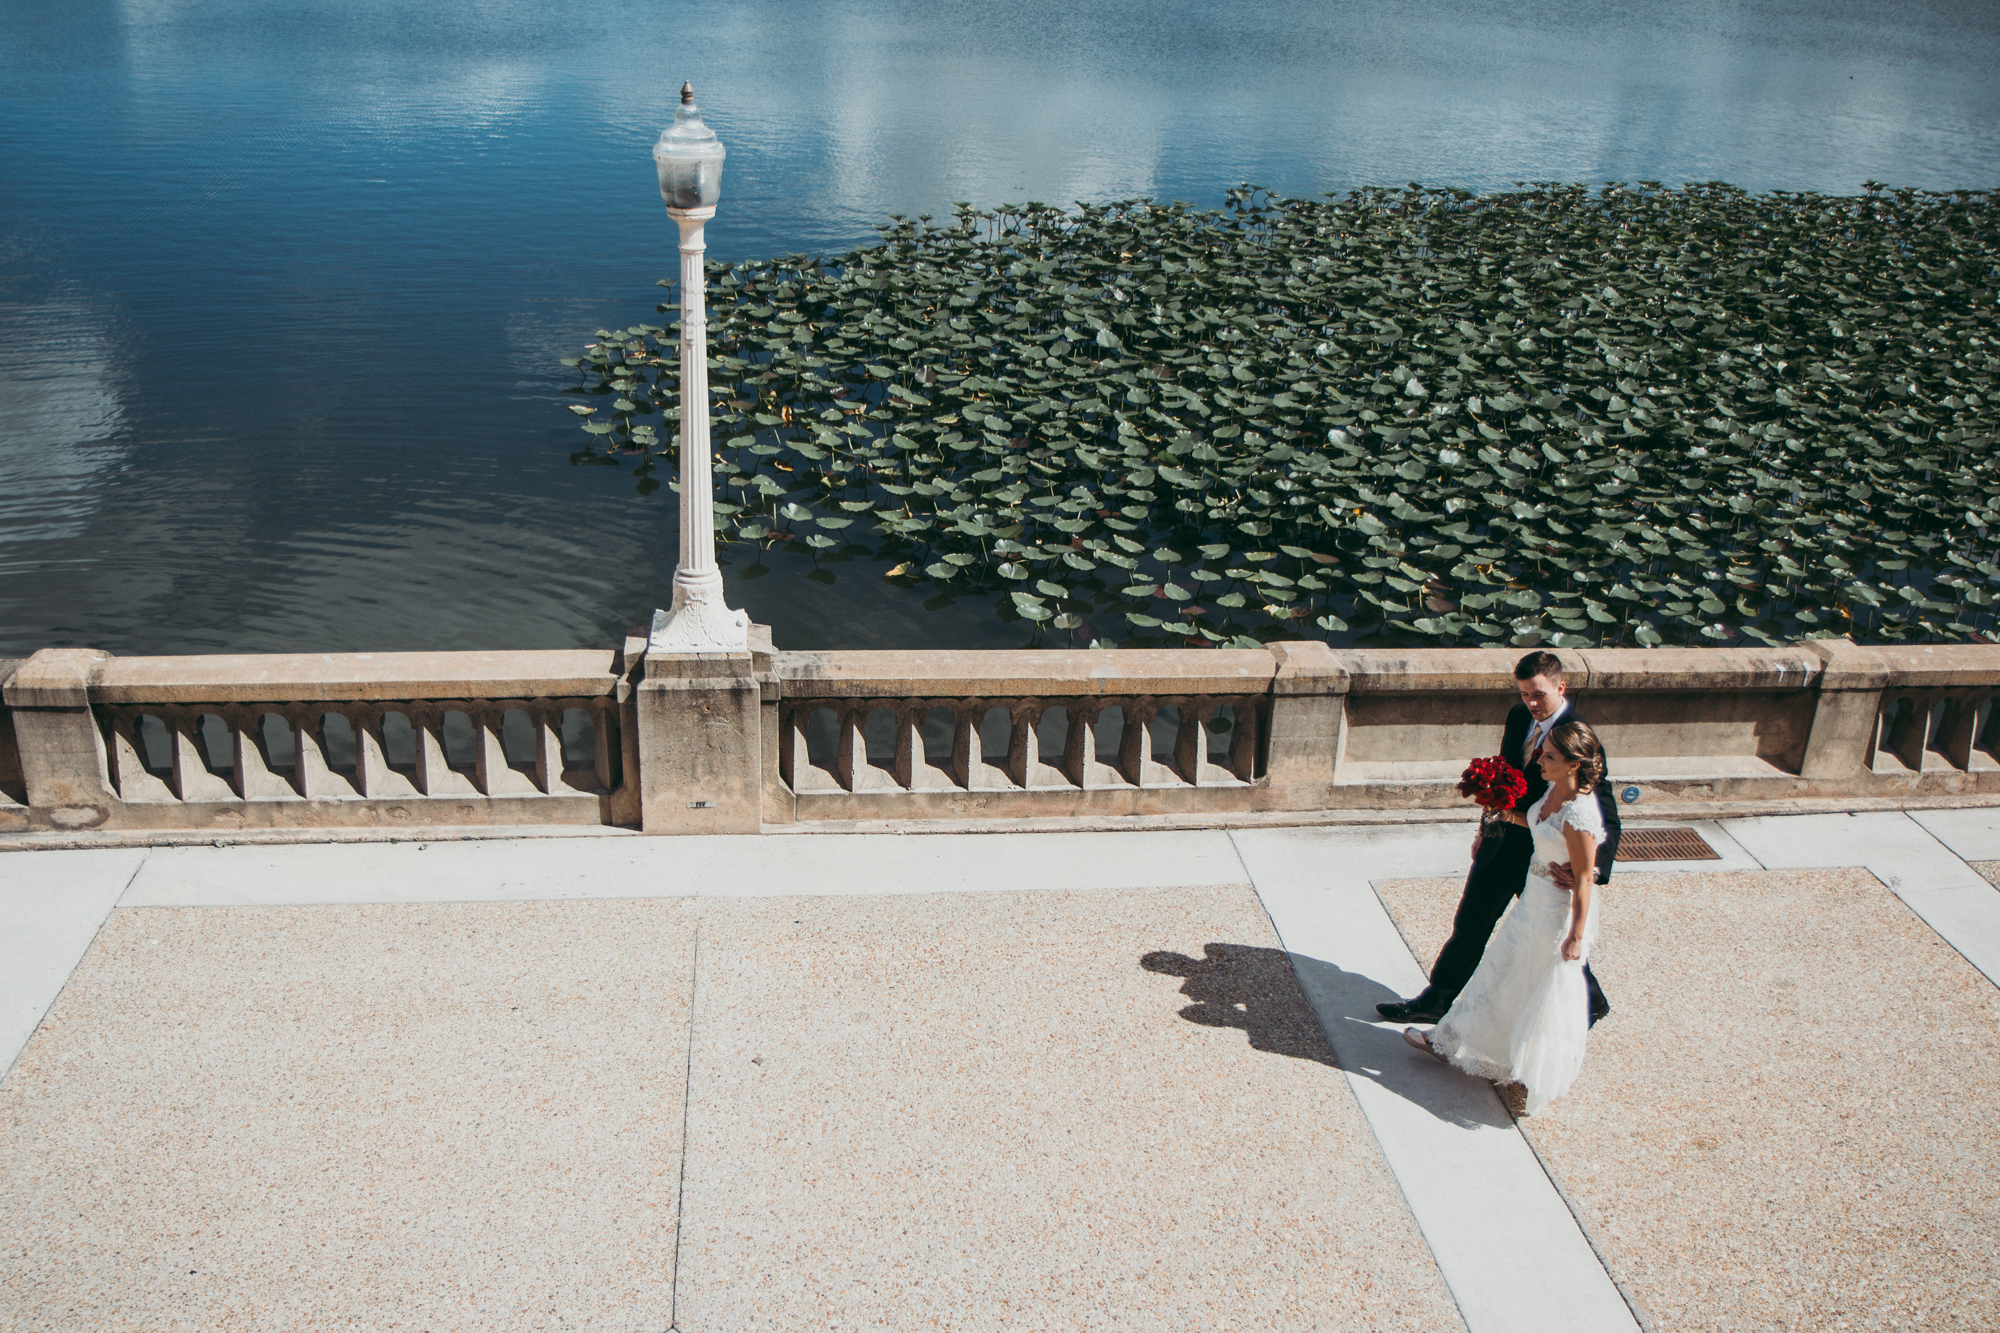 Bride and groom walking together next to a lake on a sunny day.